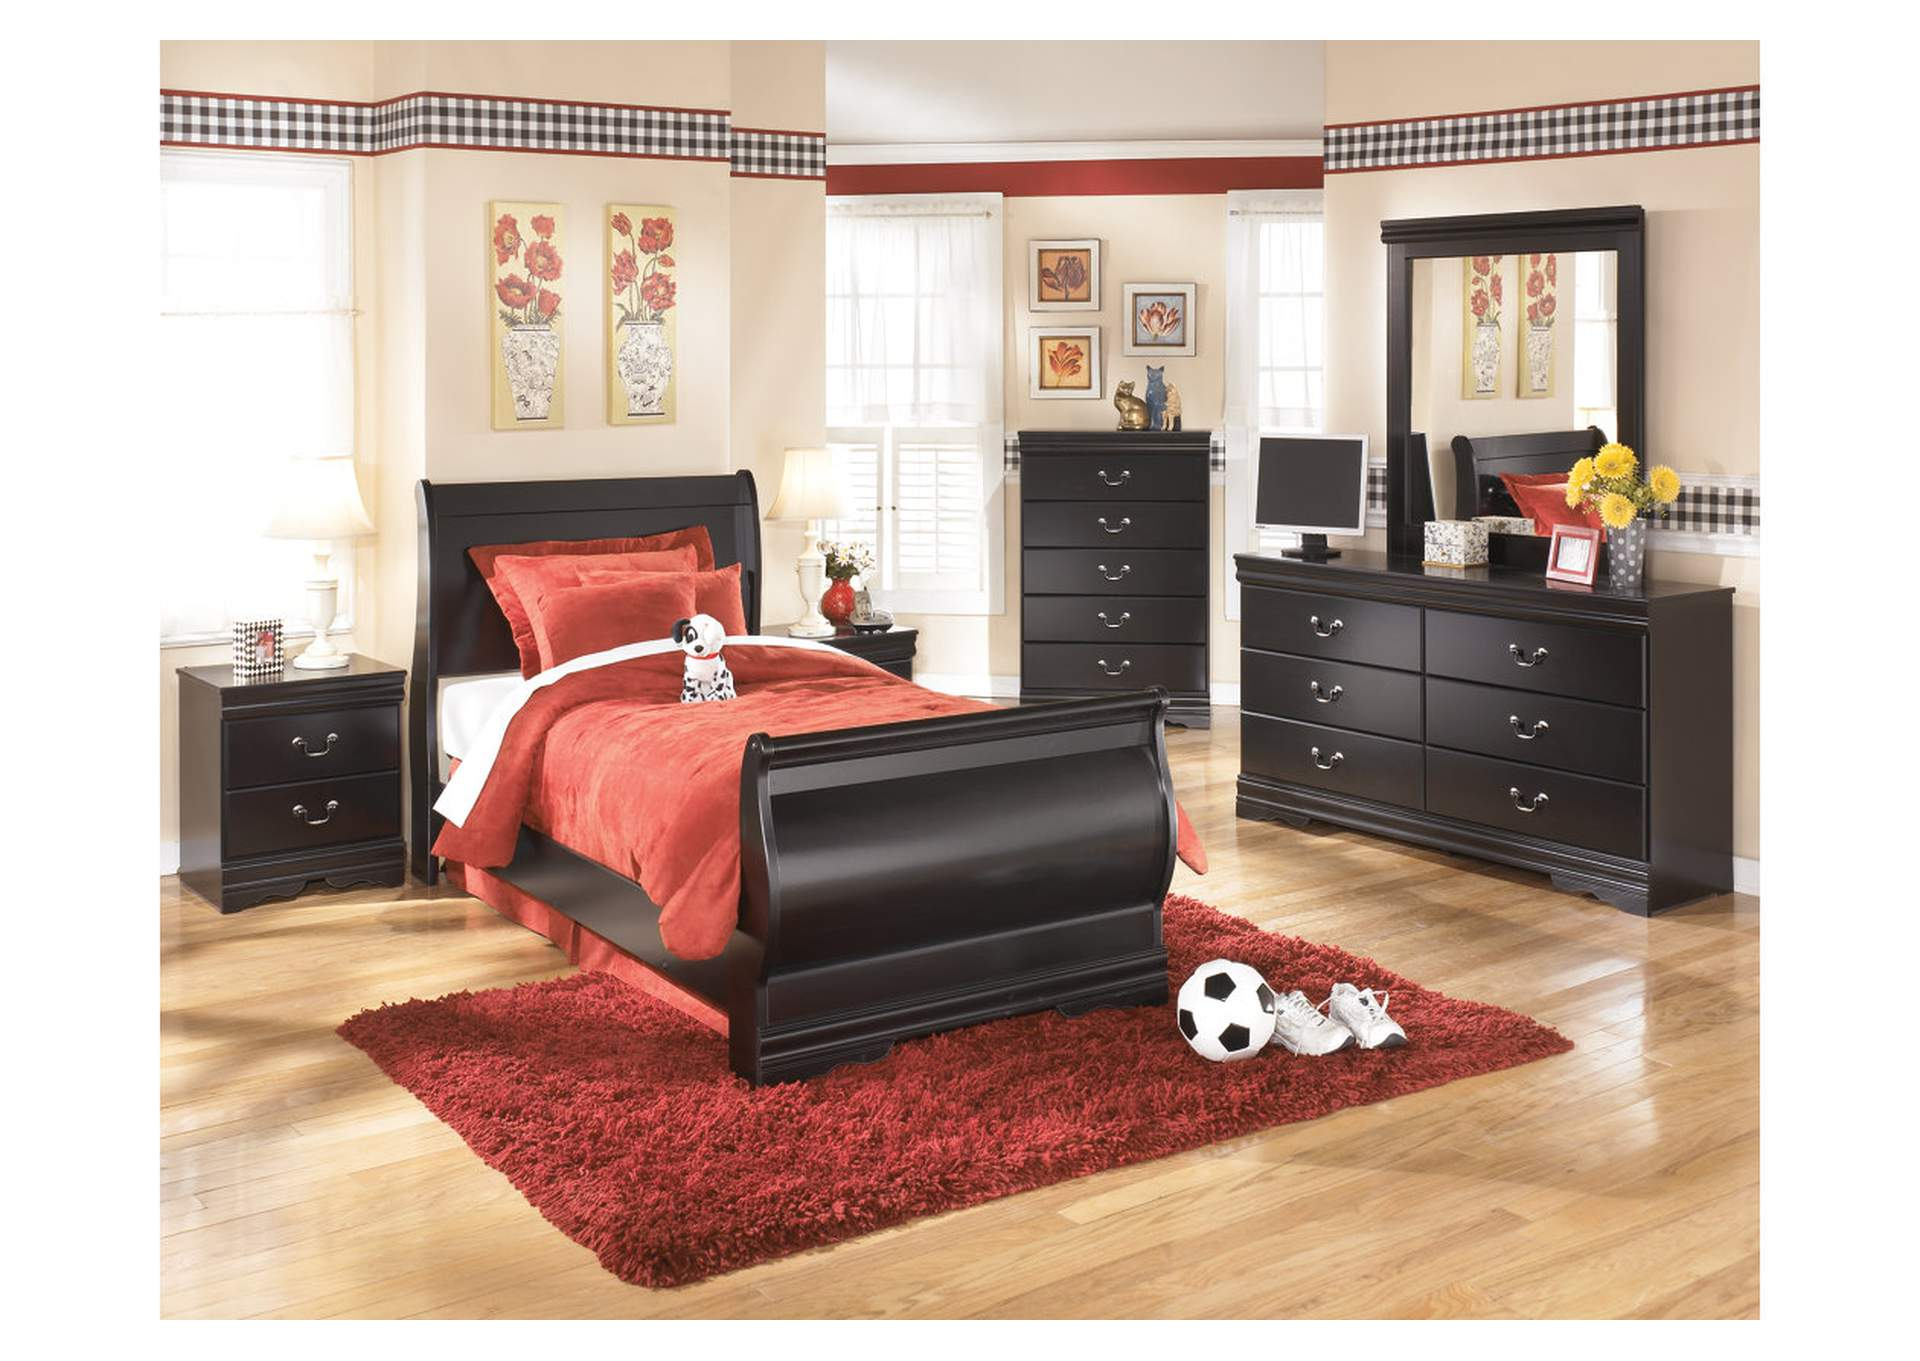 Huey Vineyard Full Sleigh Bed, Dresser & Mirror,Signature Design By Ashley